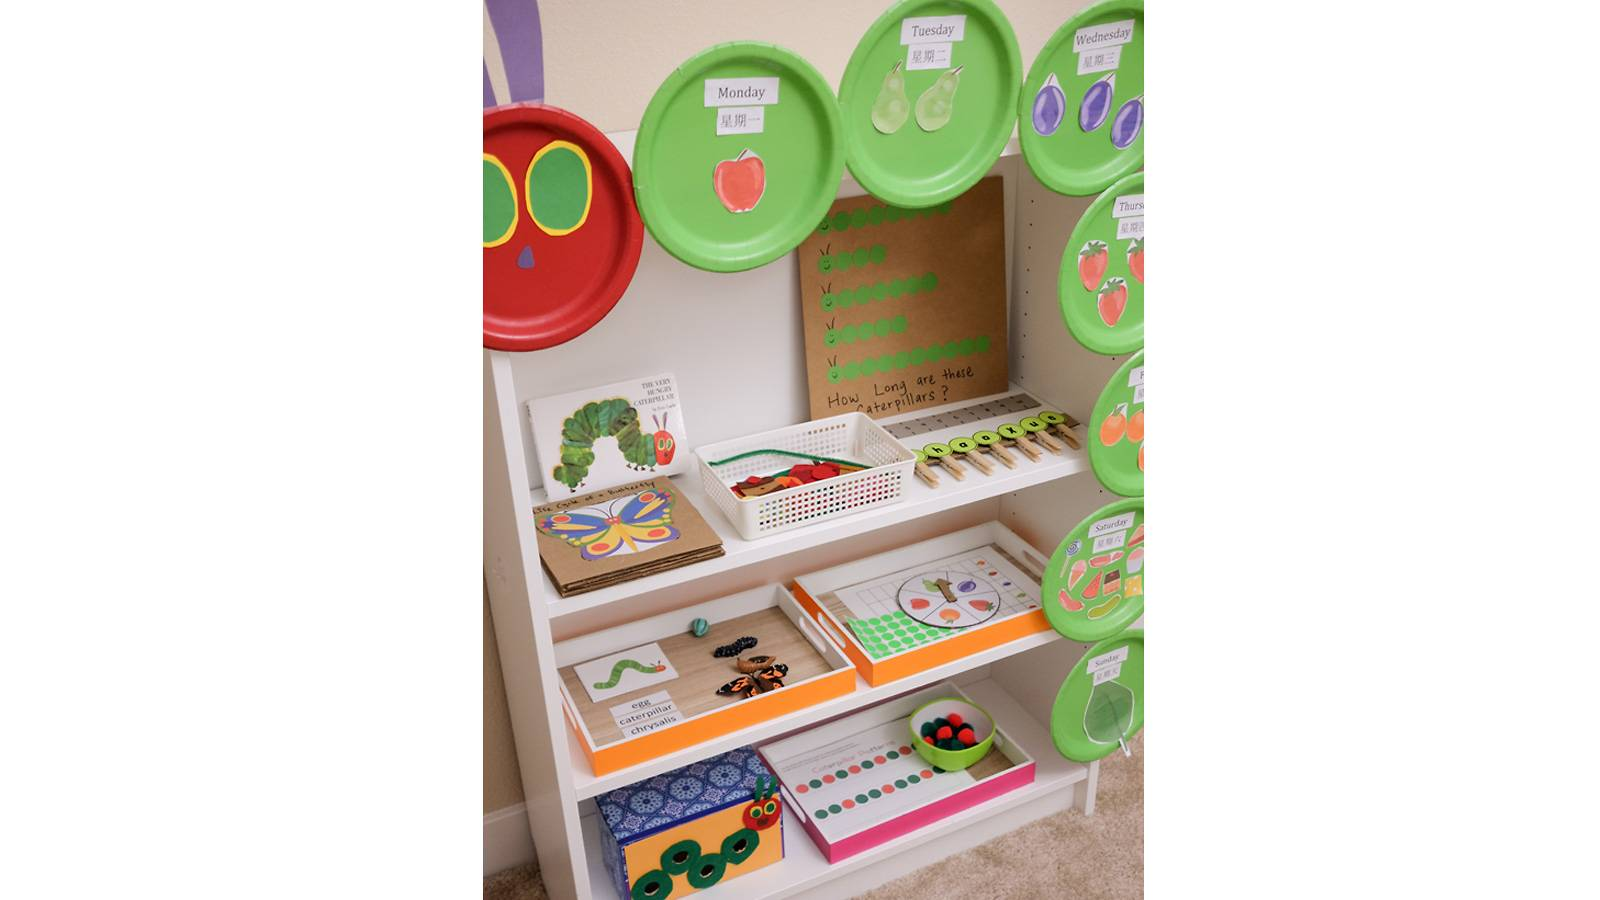 Tots--Make-it-Activity-filled-learning-shelves-for-your-tot-2